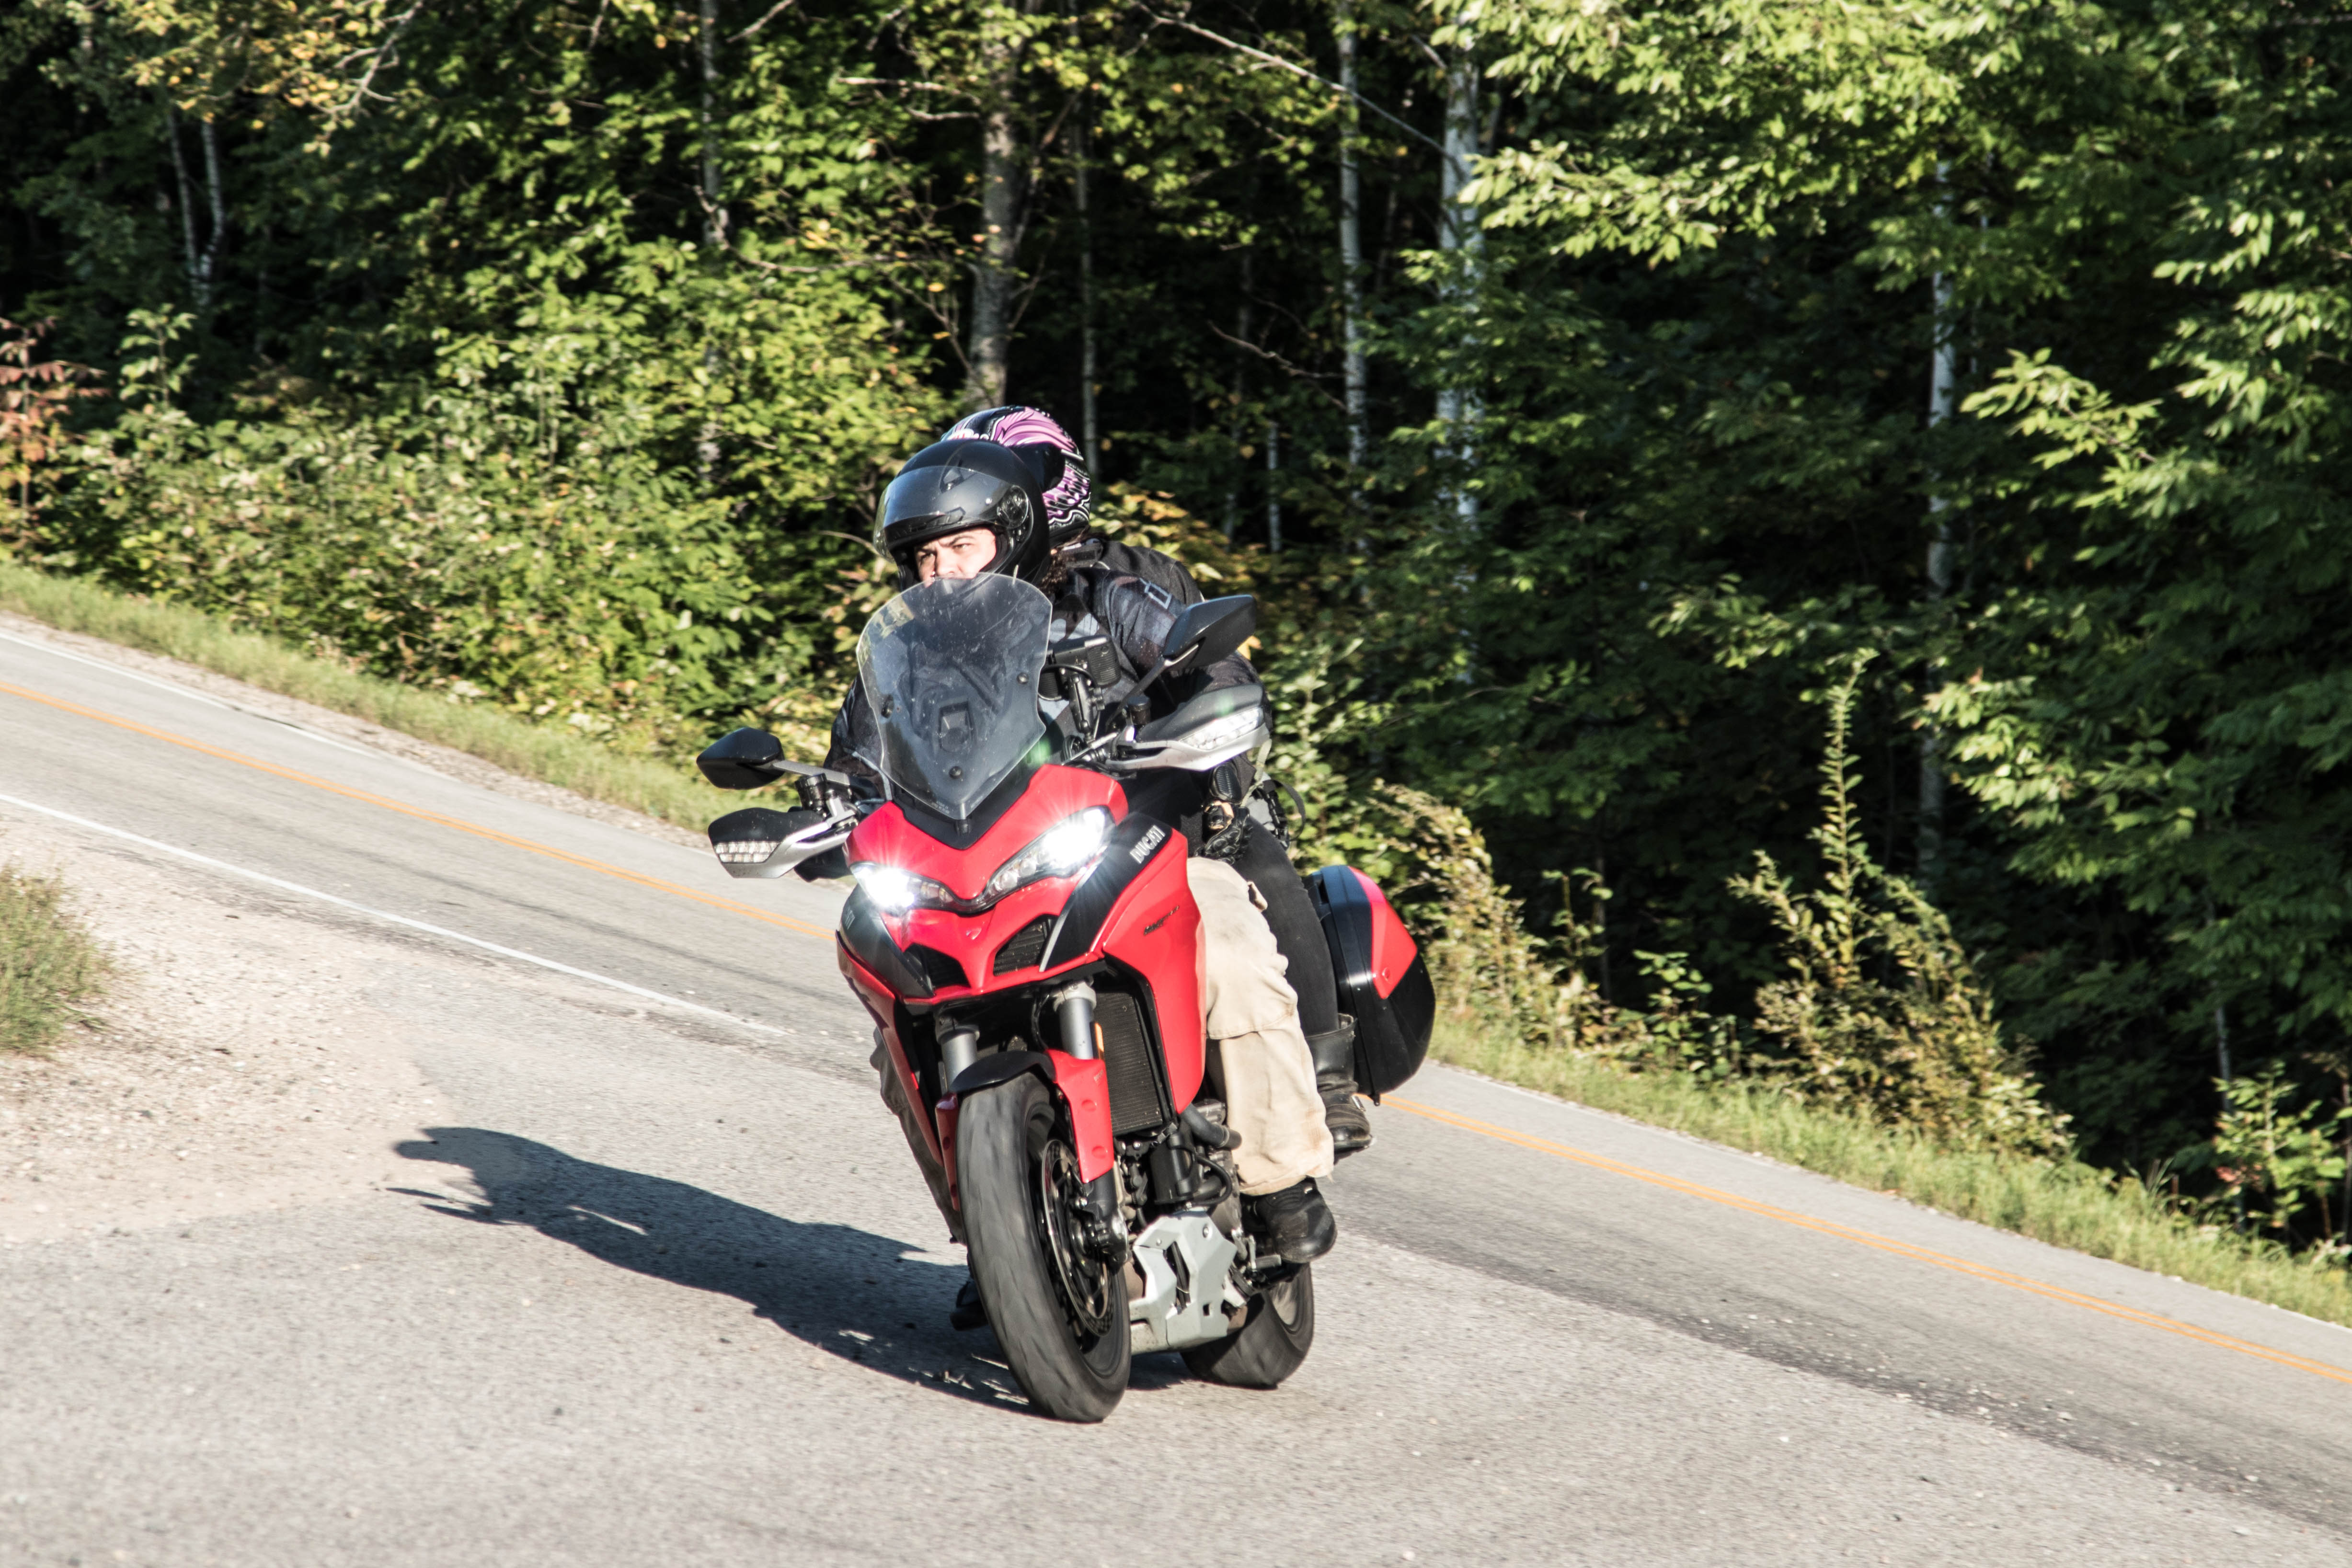 2018 Ducati Multistrada S review - RevZilla